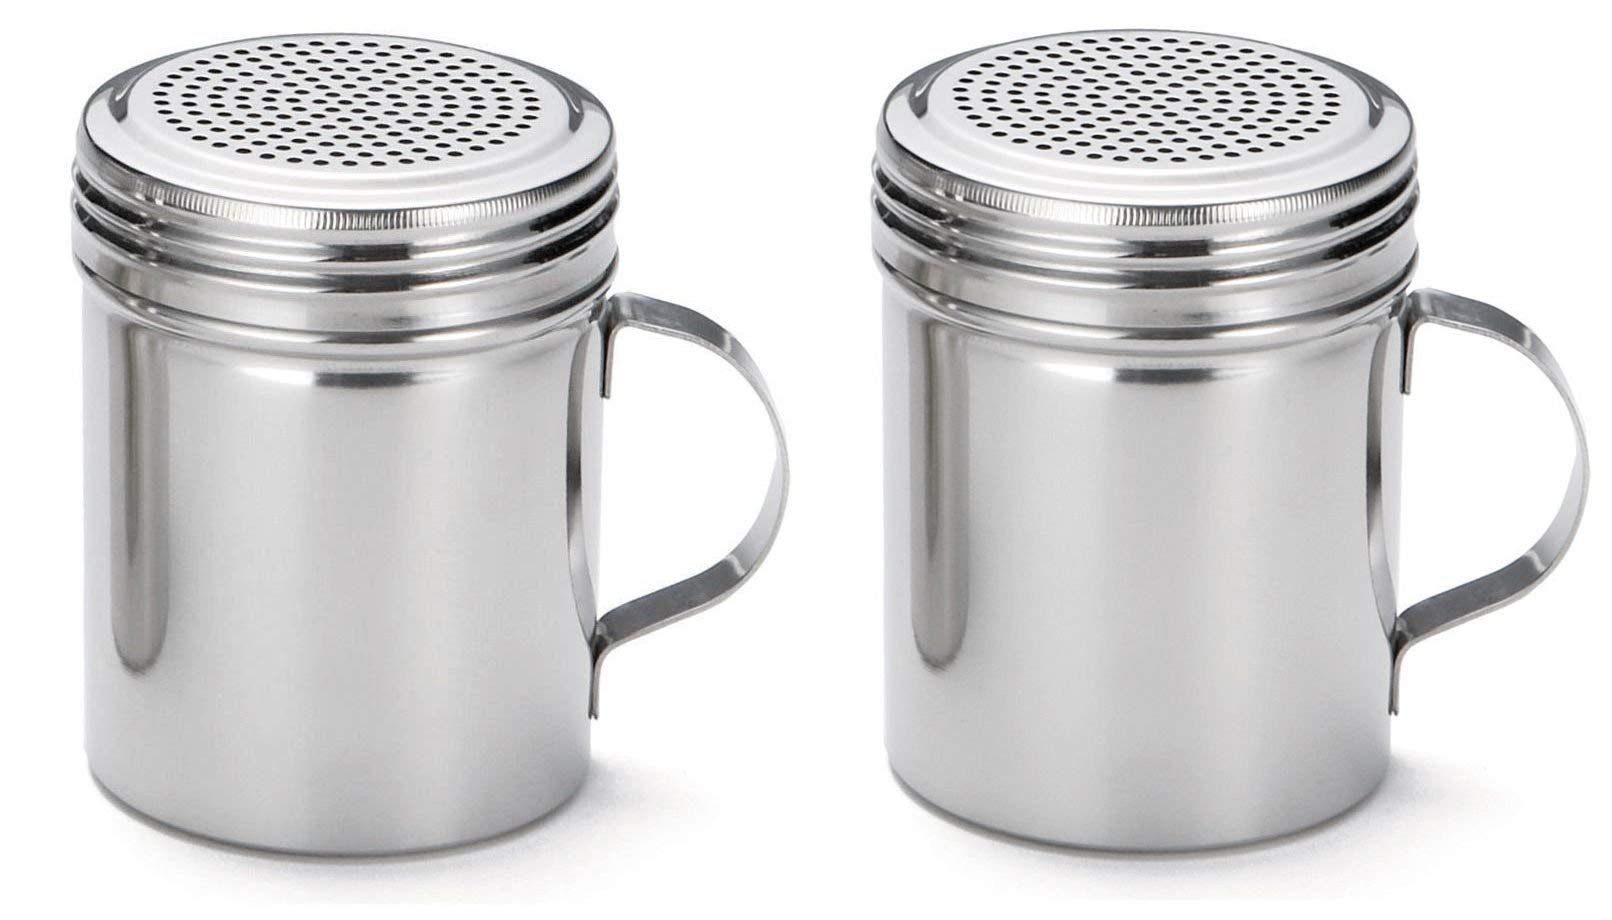 TableCraft (H159H) 10-Ounce Stainless Steel Dredge (Twо Pаck)